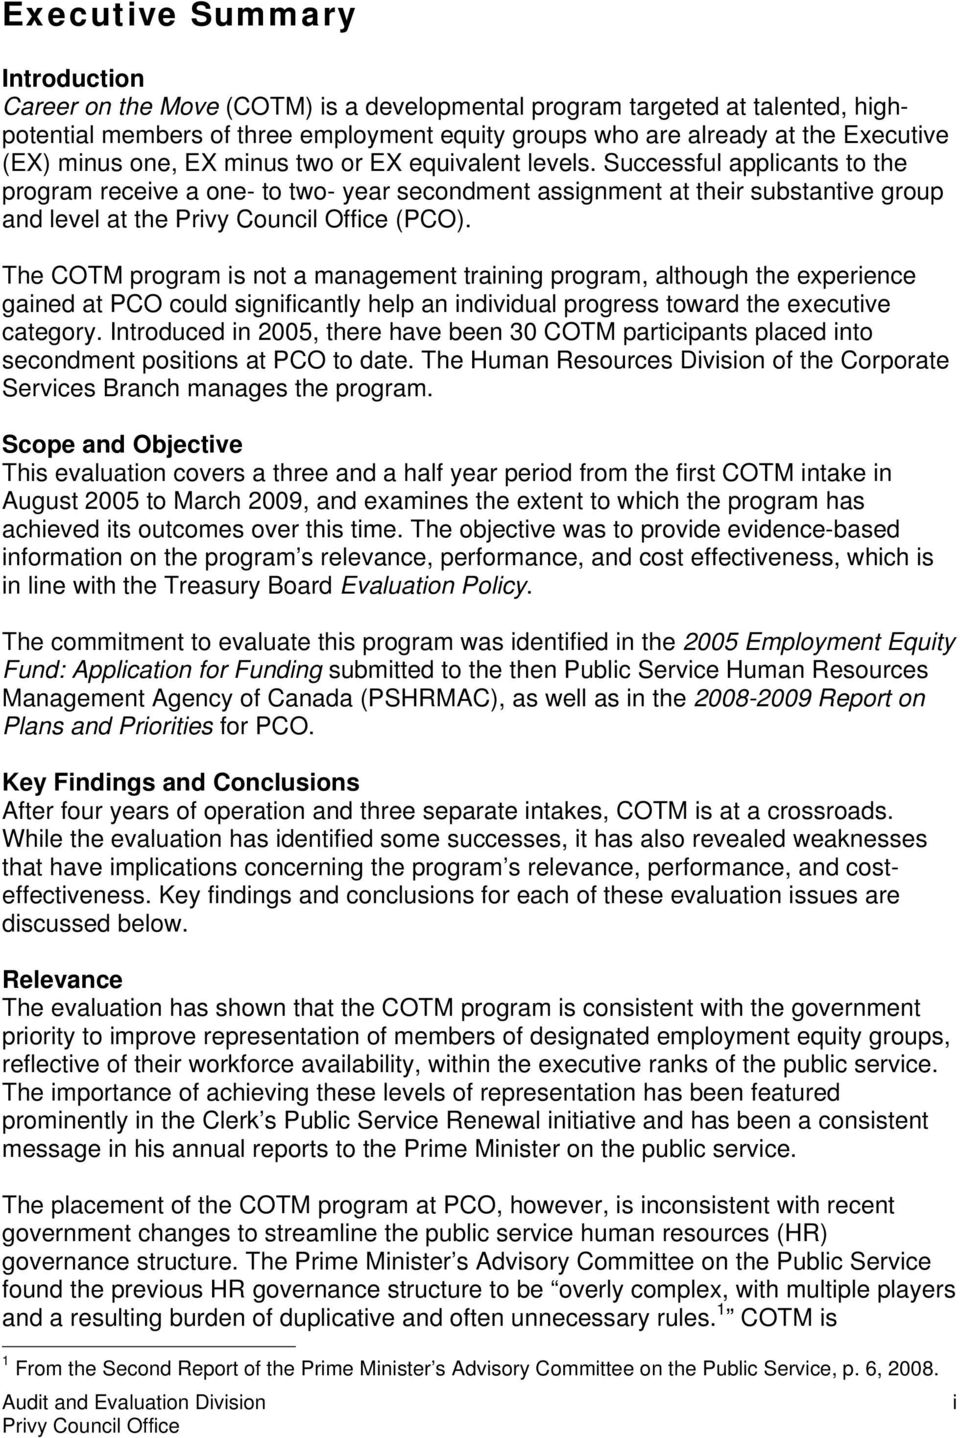 The COTM program is not a management training program, although the experience gained at PCO could significantly help an individual progress toward the executive category.